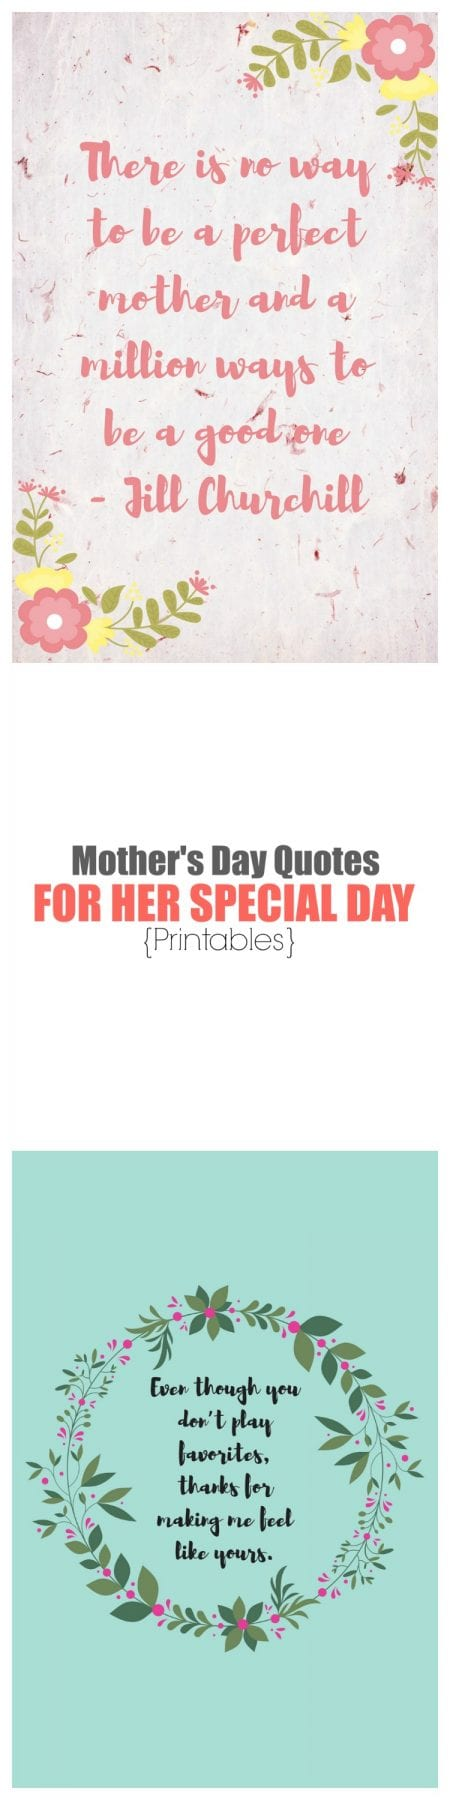 5 mothers day quotes for her special day printables print out these mothers day quotes to frame or put it in a card for her thecheapjerseys Choice Image